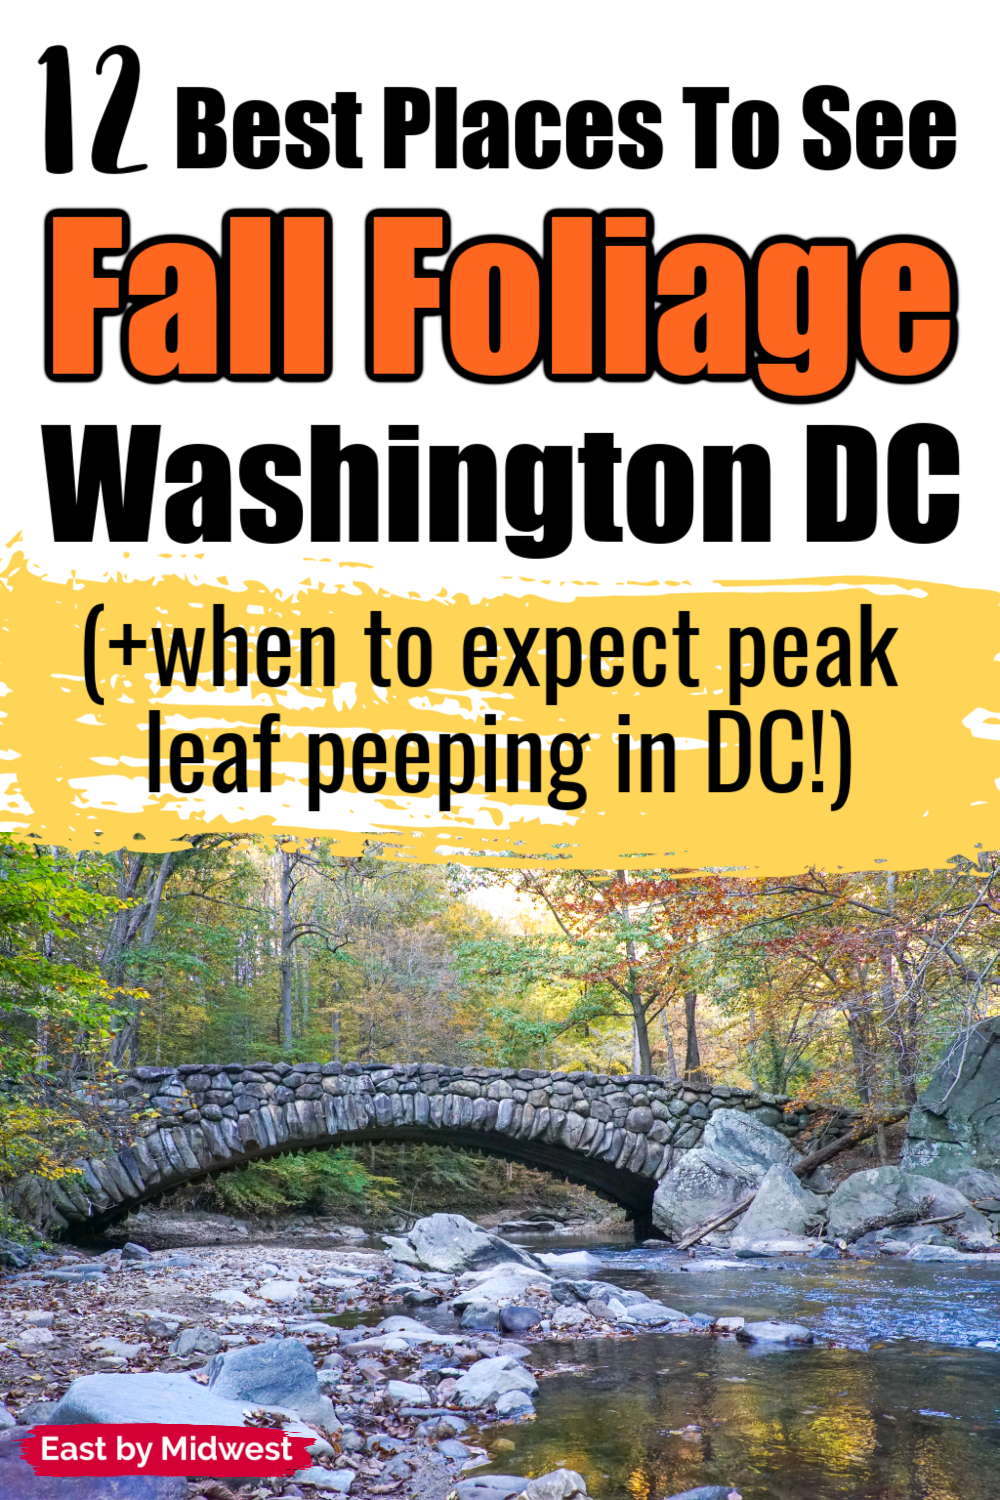 12 Places to See the Best Fall Foliage in Washington DC